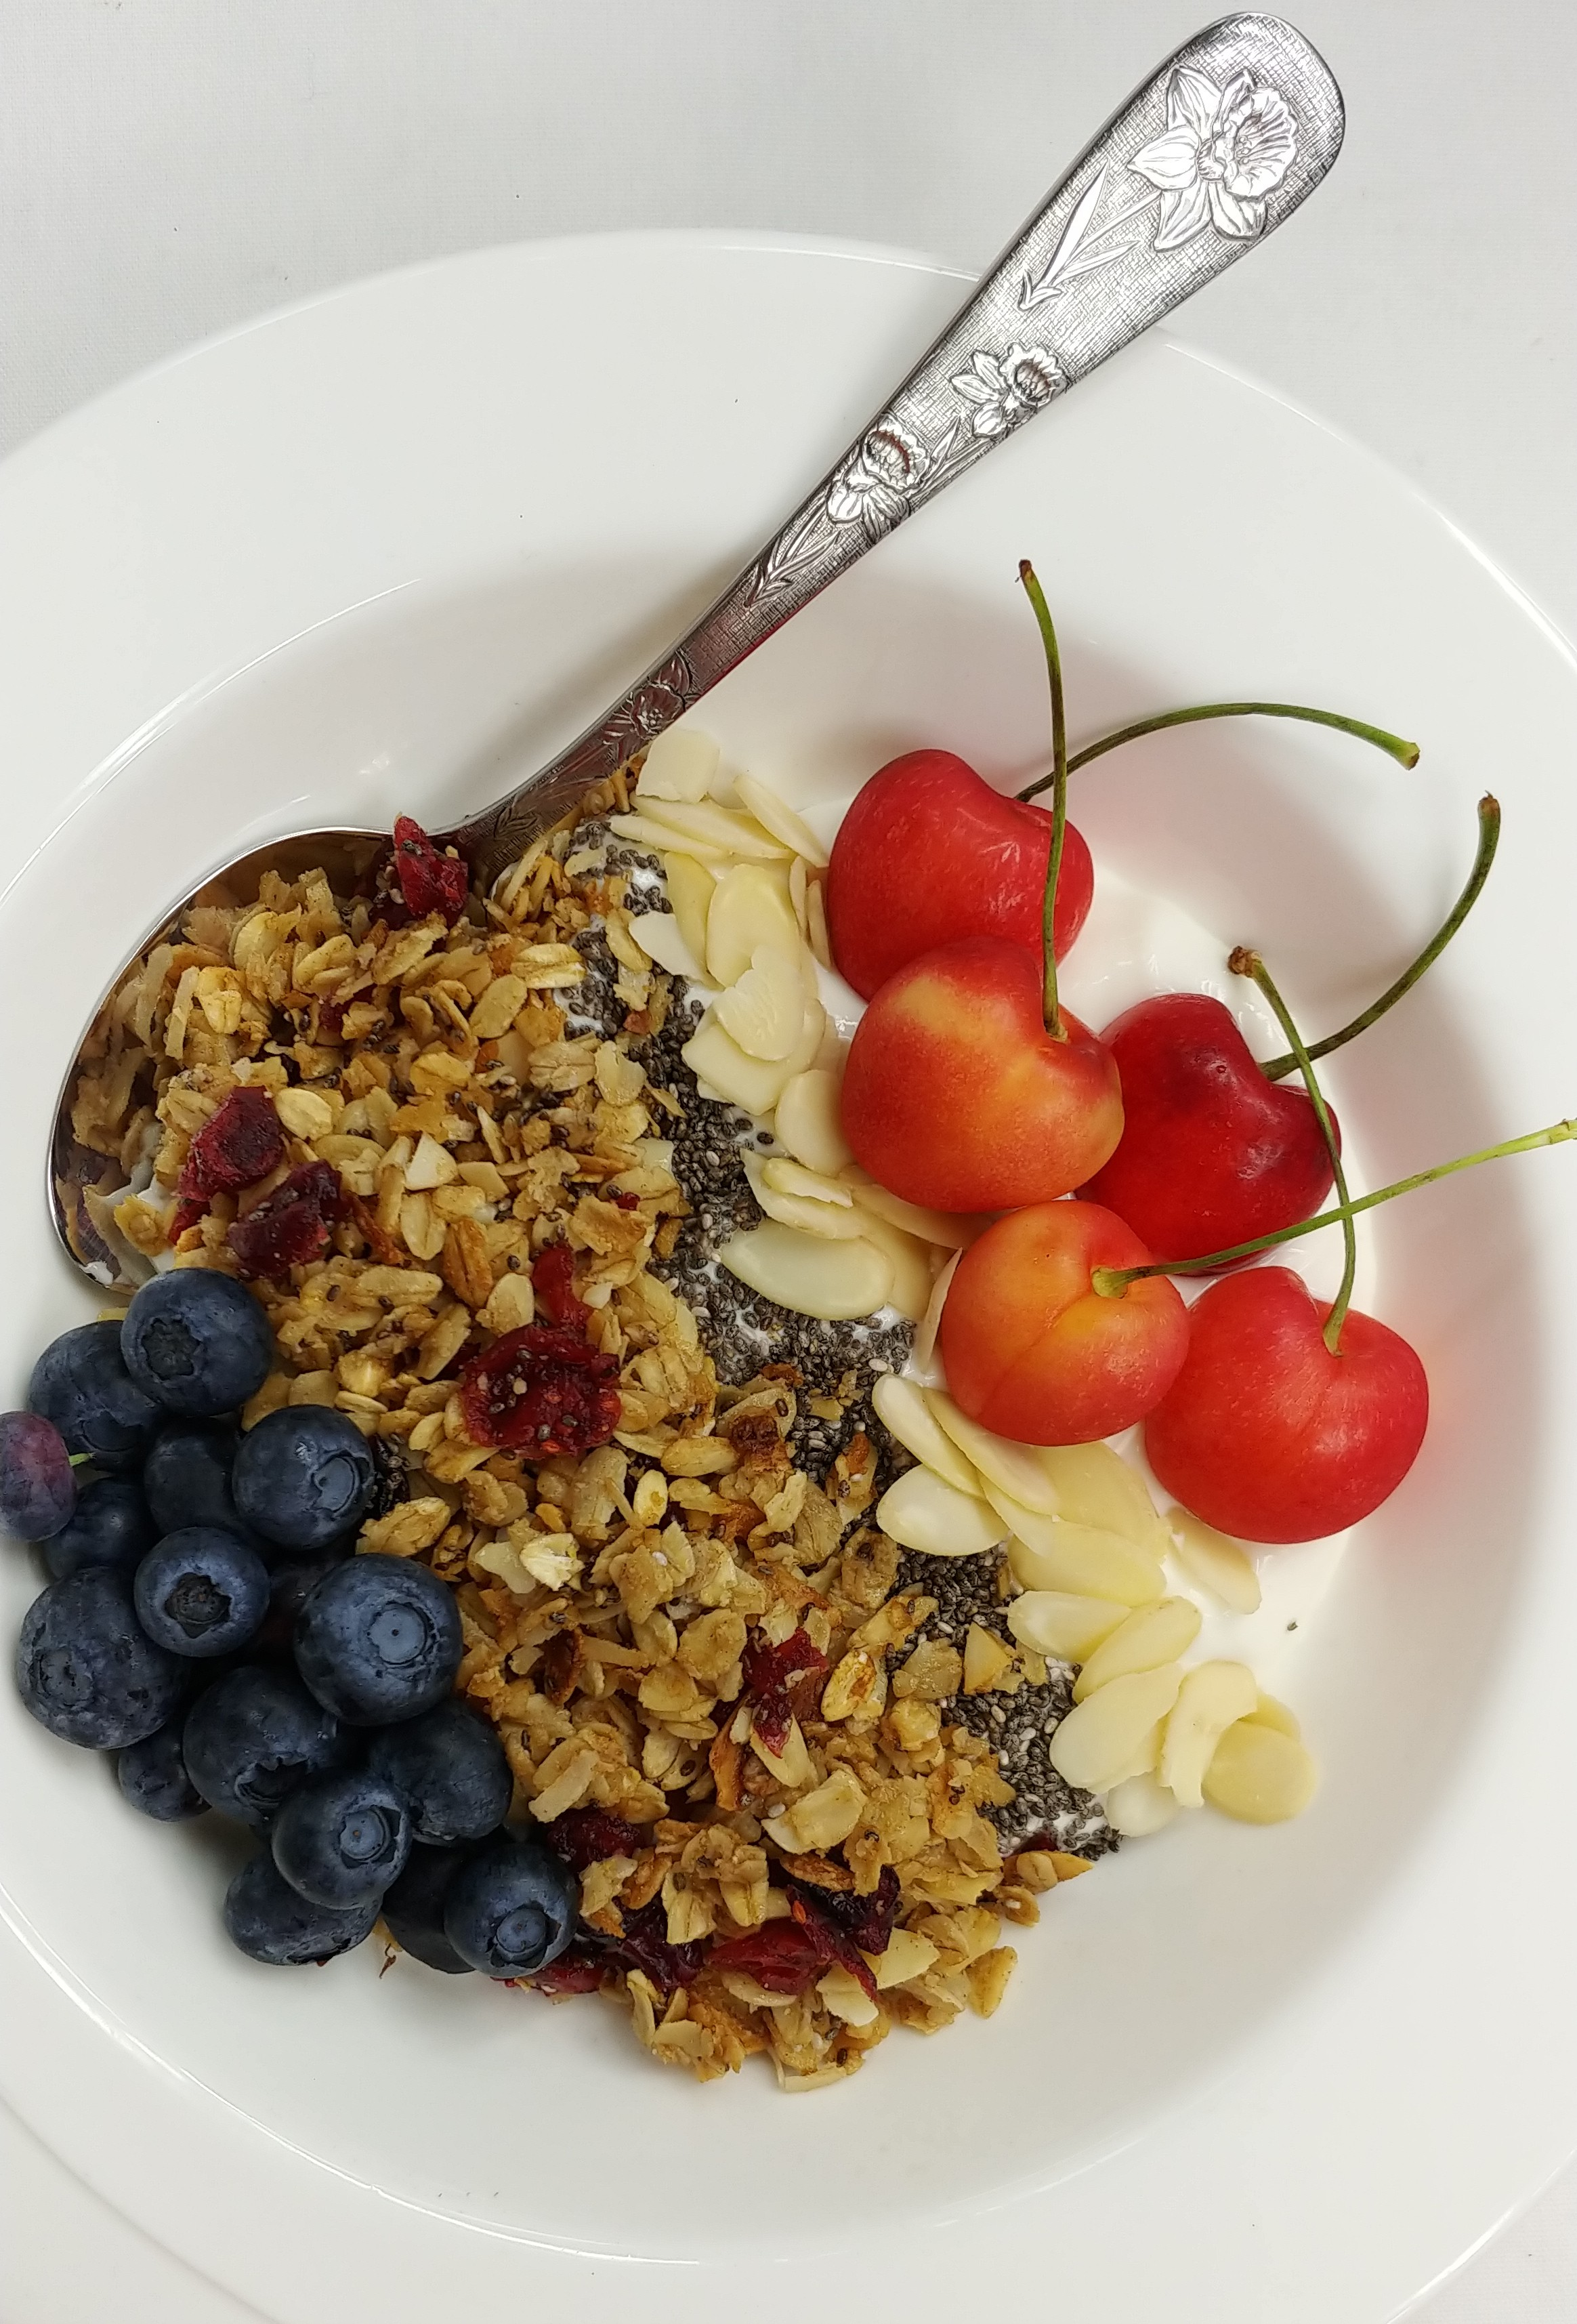 Liberty Tabletop's floral pattern flatware goes perfectly with my yogurt and granola breakfast bowl!